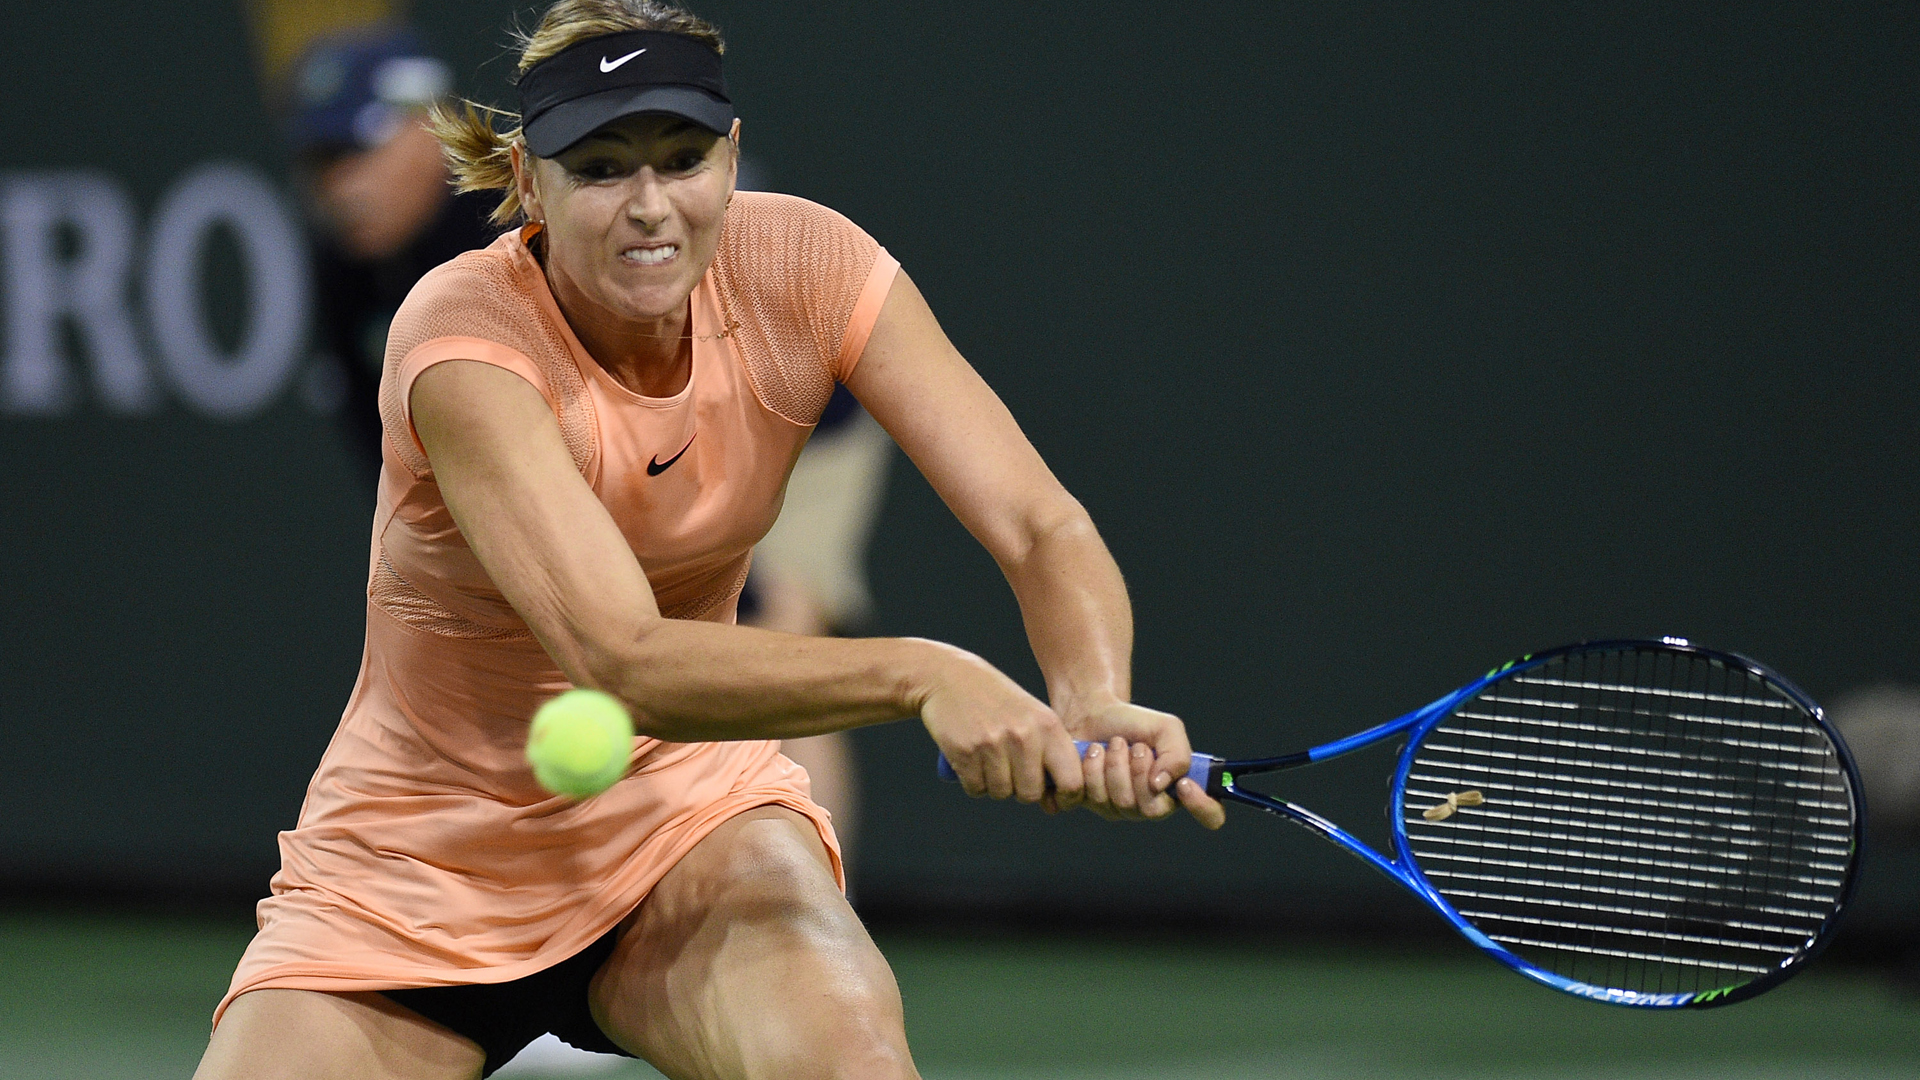 Maria Sharapova upset in 1st round at Indian Wells